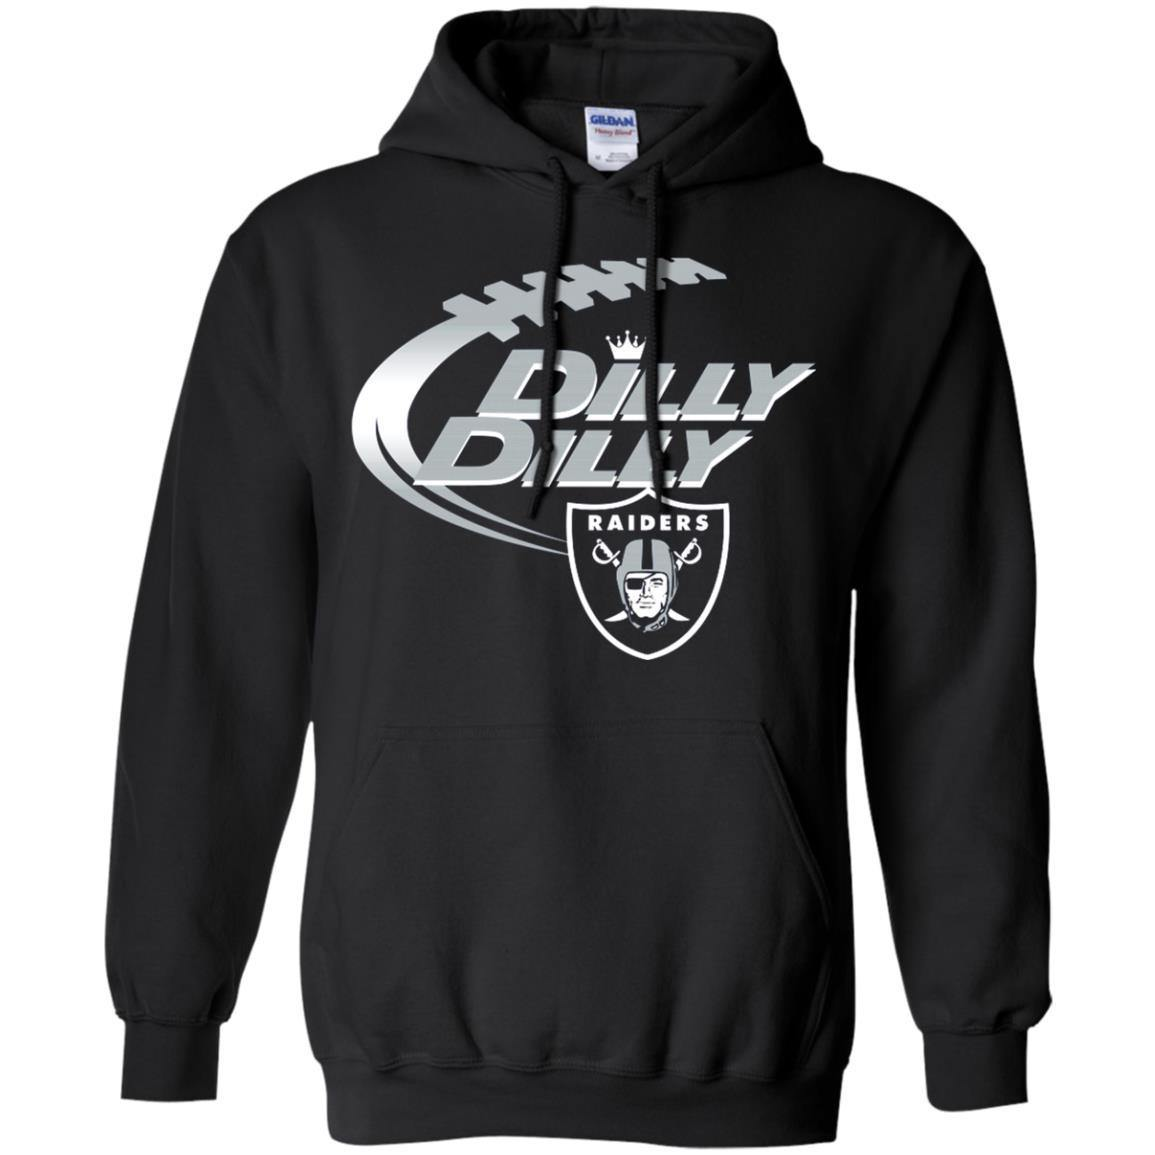 Dilly Dilly Oakland Raiders Nfl American Football Bud Light Logo Shirt